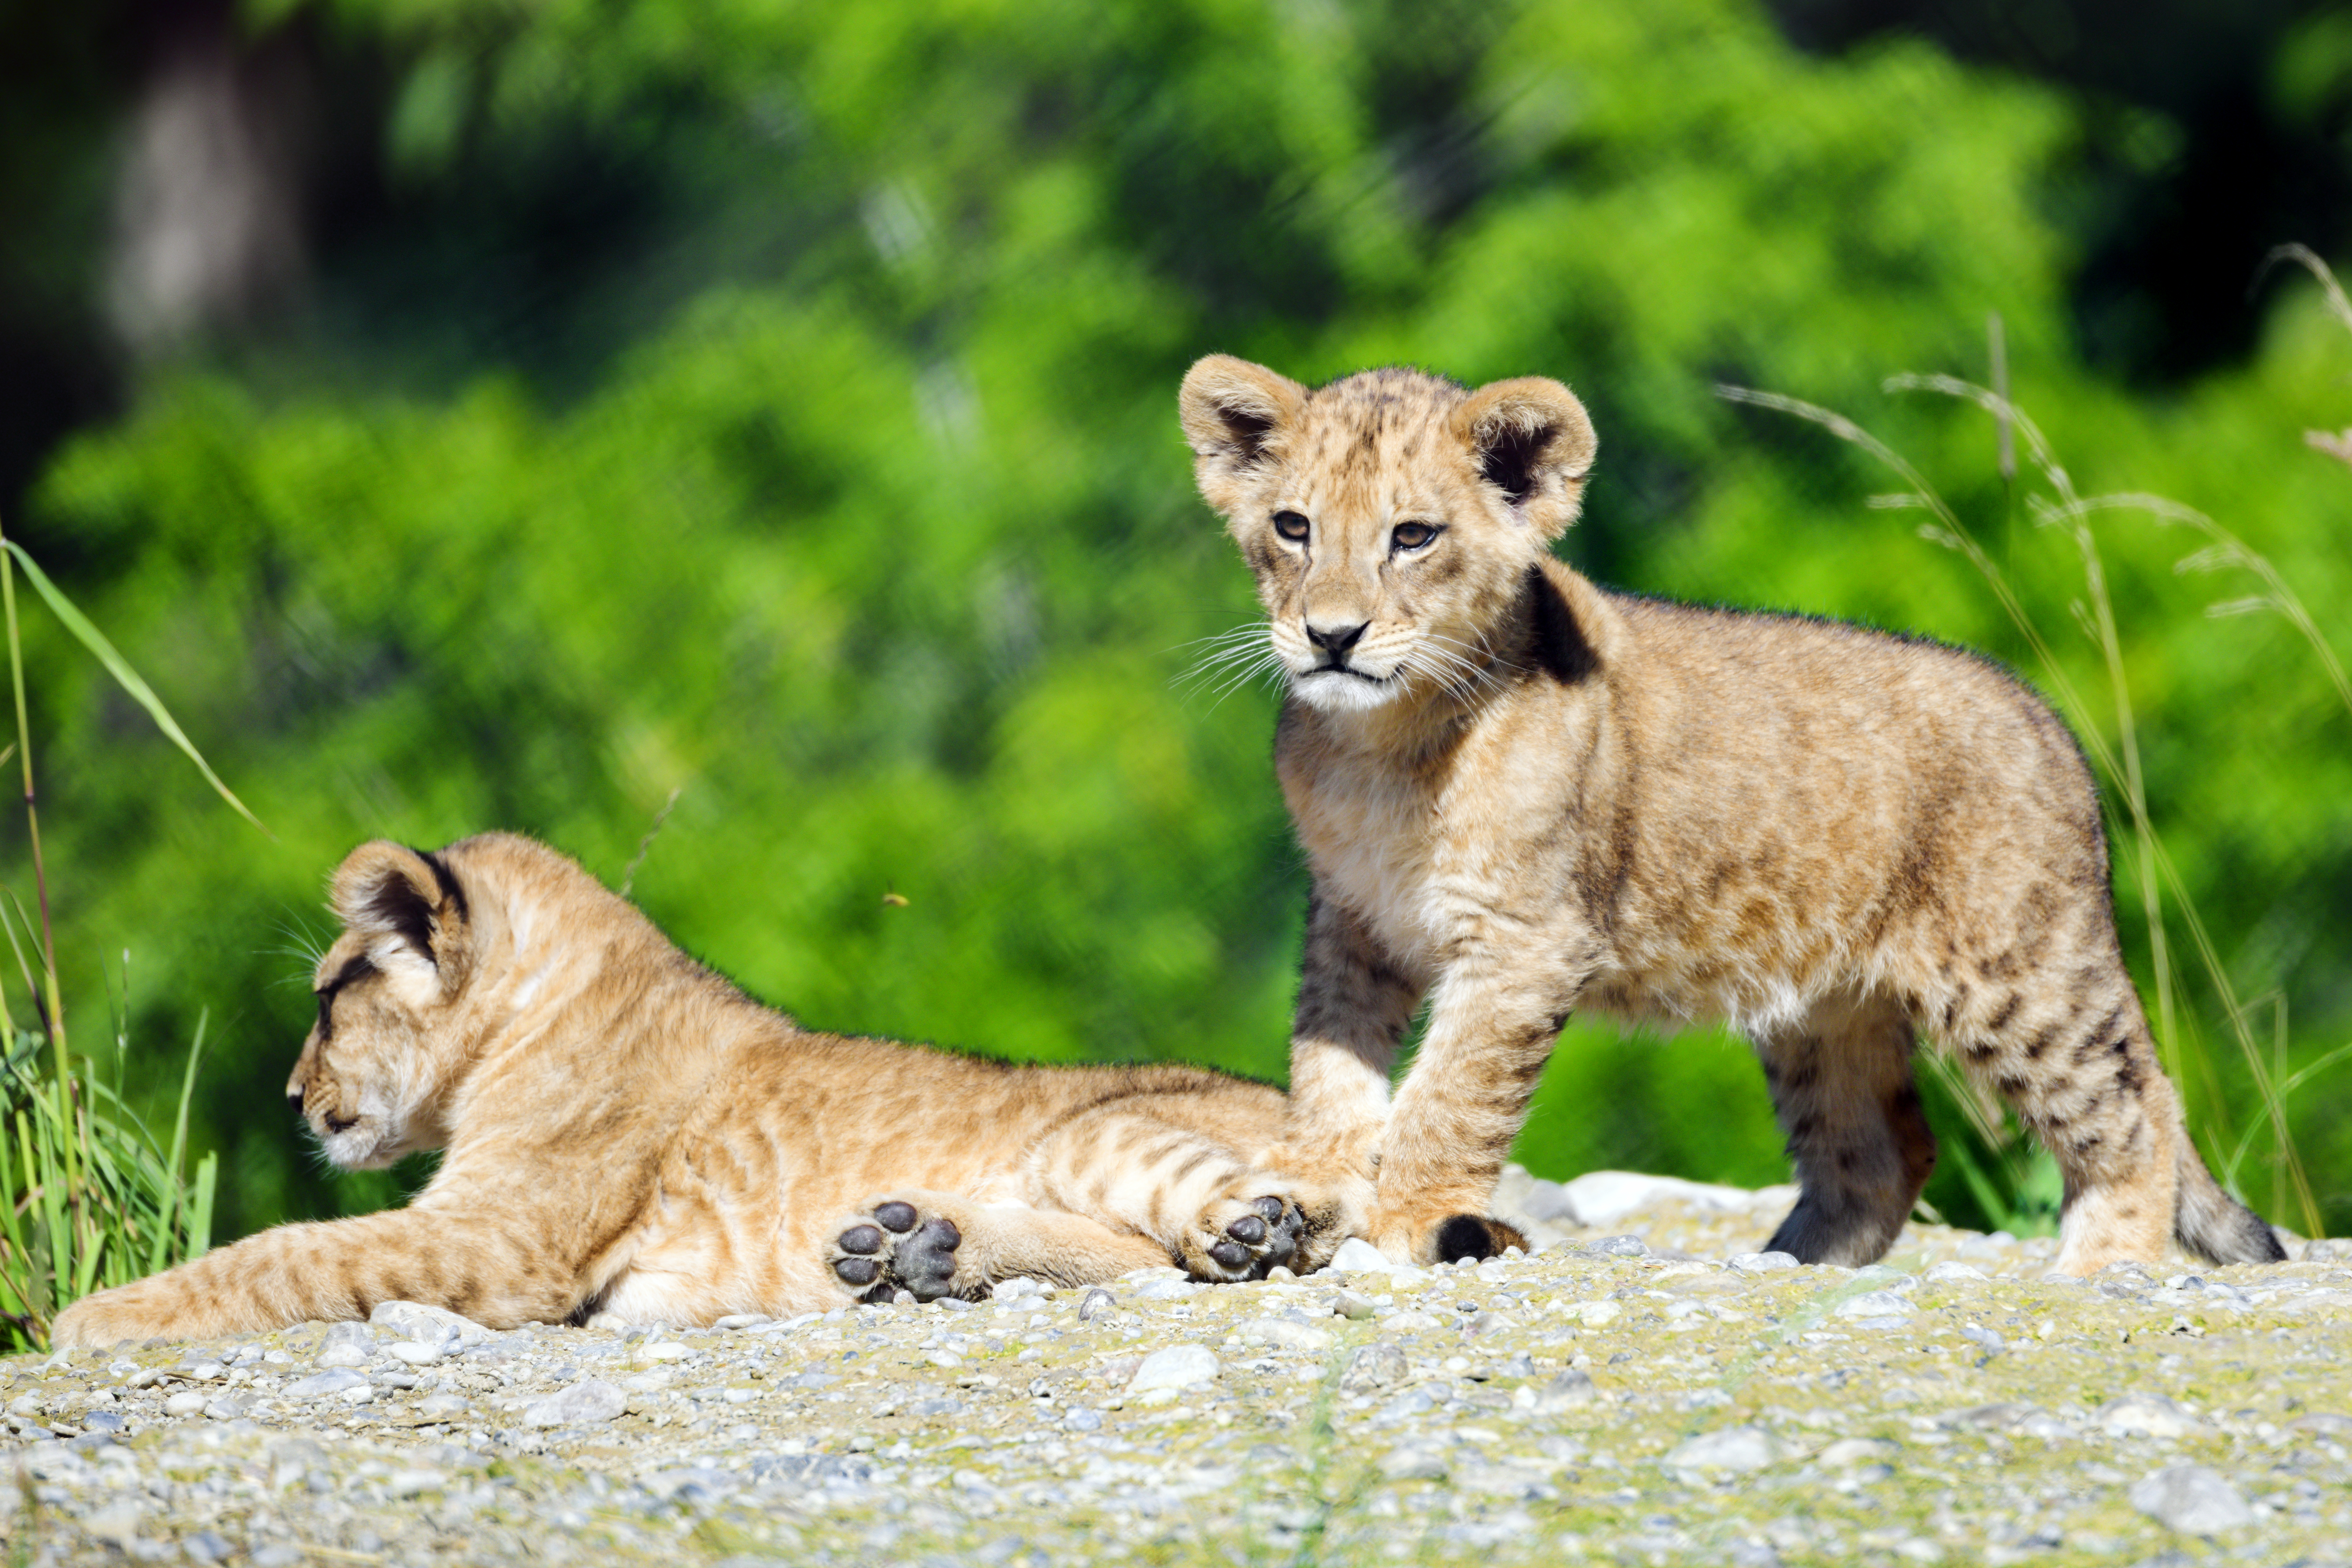 66471 download wallpaper Animals, Lion Cub, Lion, Young, Joey, Nice, Sweetheart, Wildlife screensavers and pictures for free